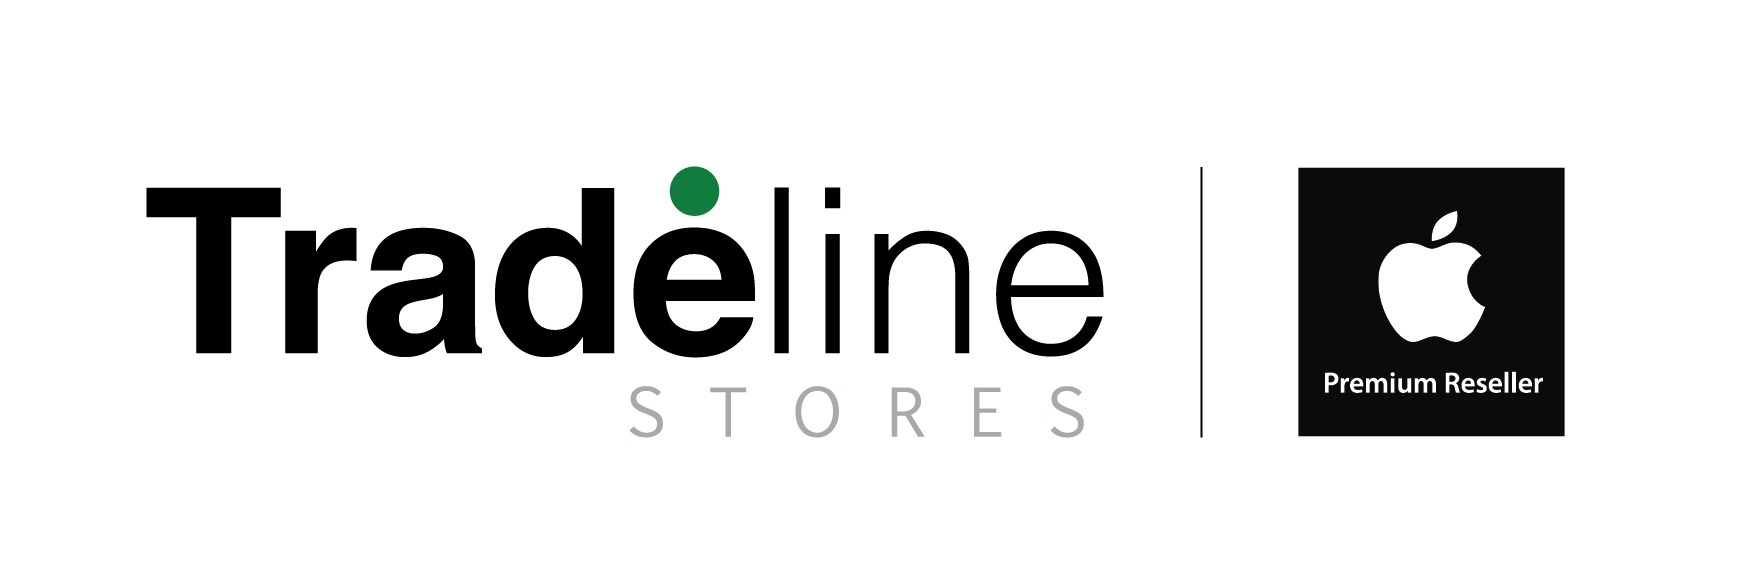 About Us - Tradeline Stores Payment